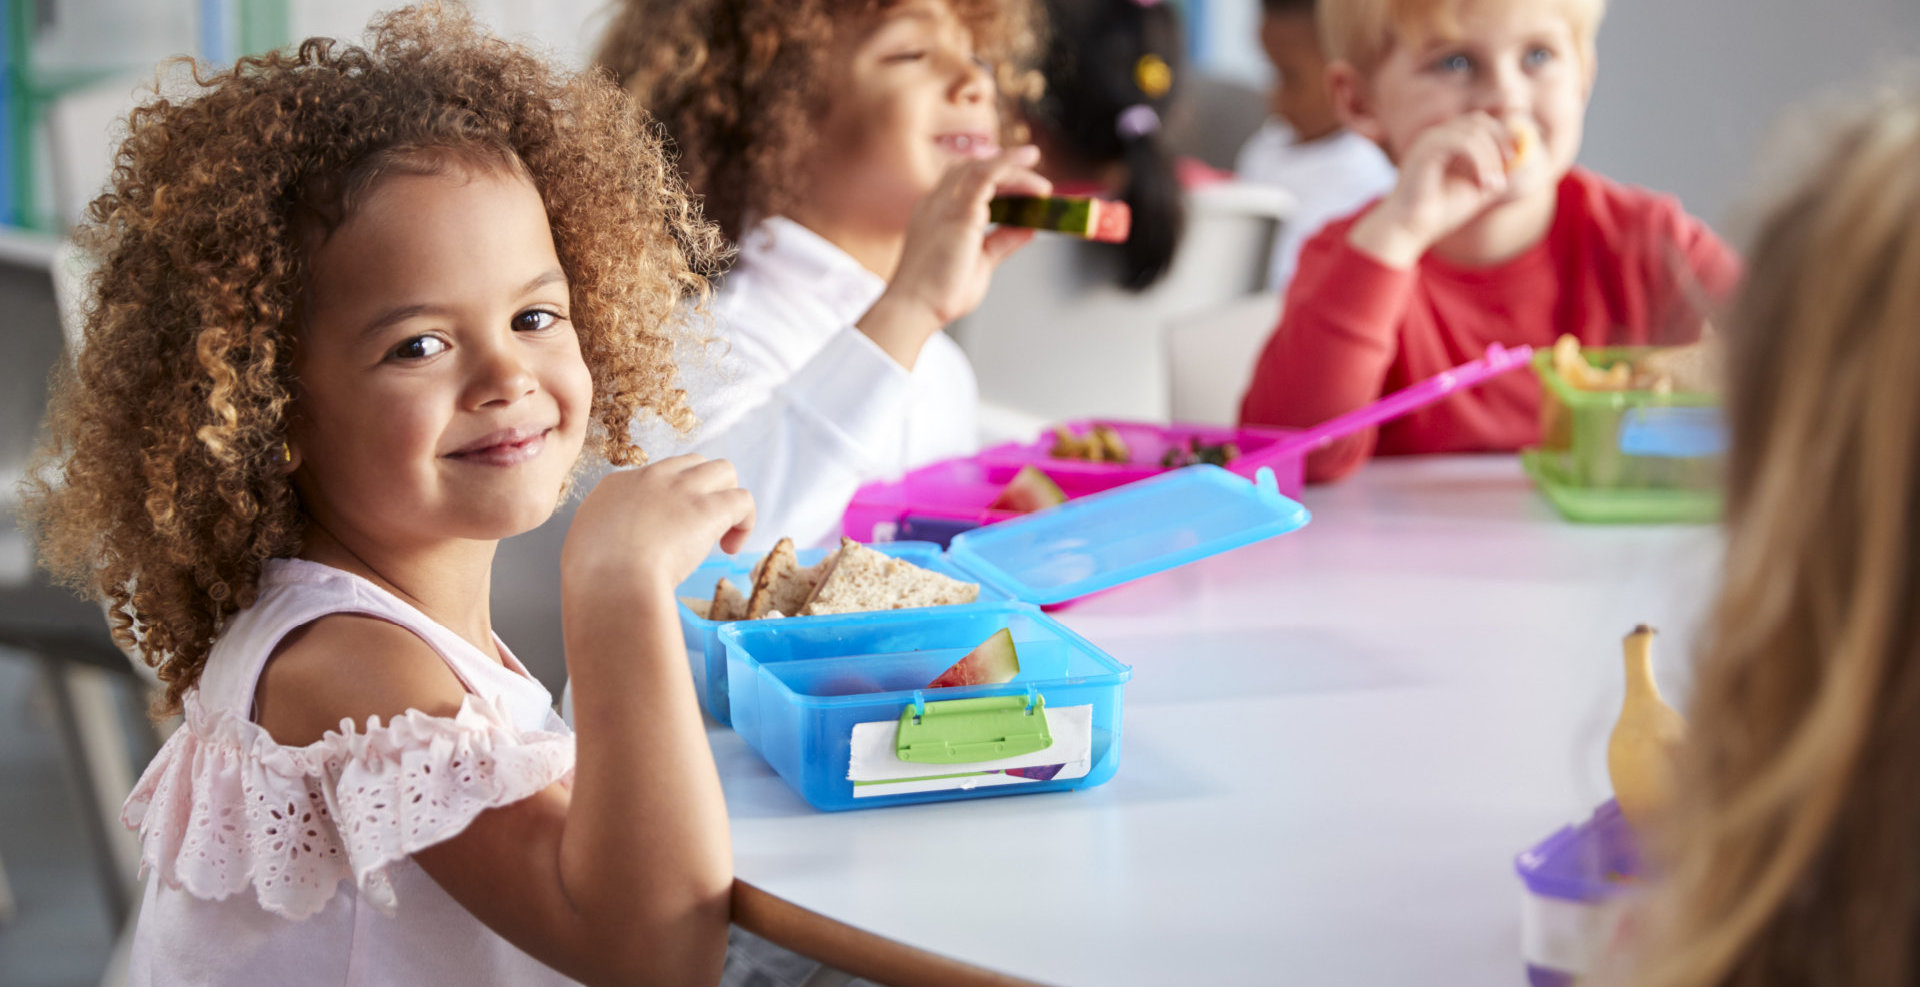 Close up of smiling young children sitting at a table eating their packed lunches together at infant school, girl smiling to camer.